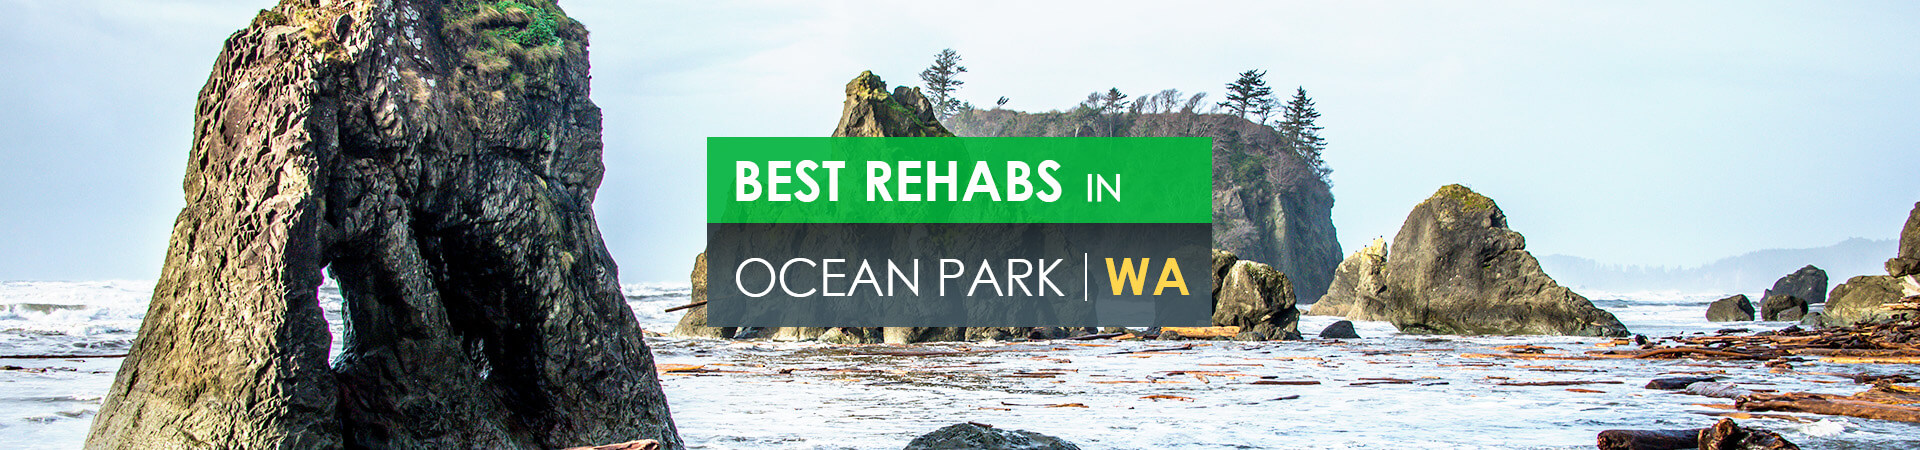 Best rehabs in Ocean Park, WA